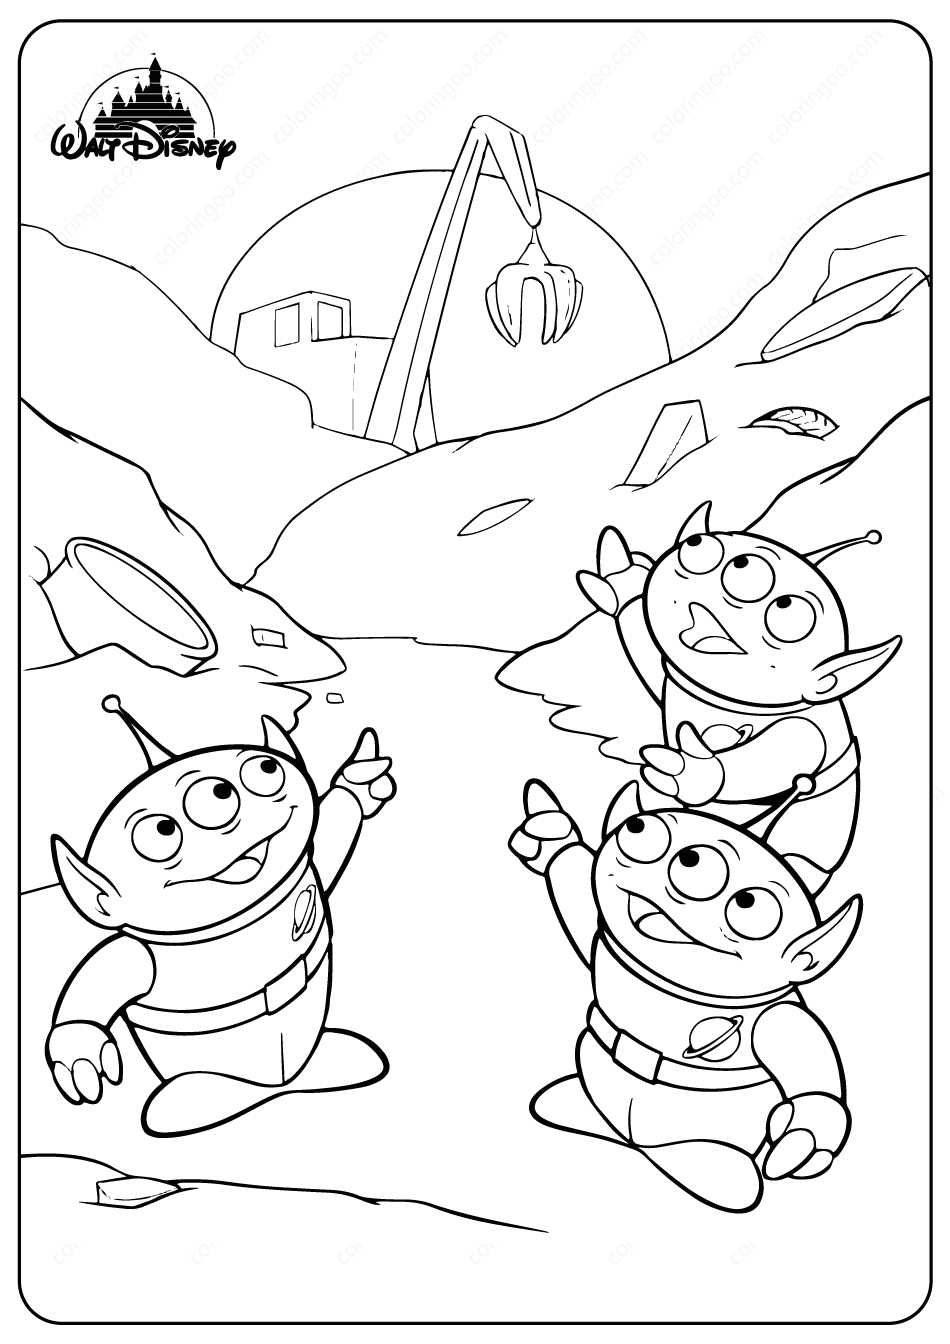 coloring pages disney toy story toy story 52 coloring pages hellokidscom story pages disney toy coloring